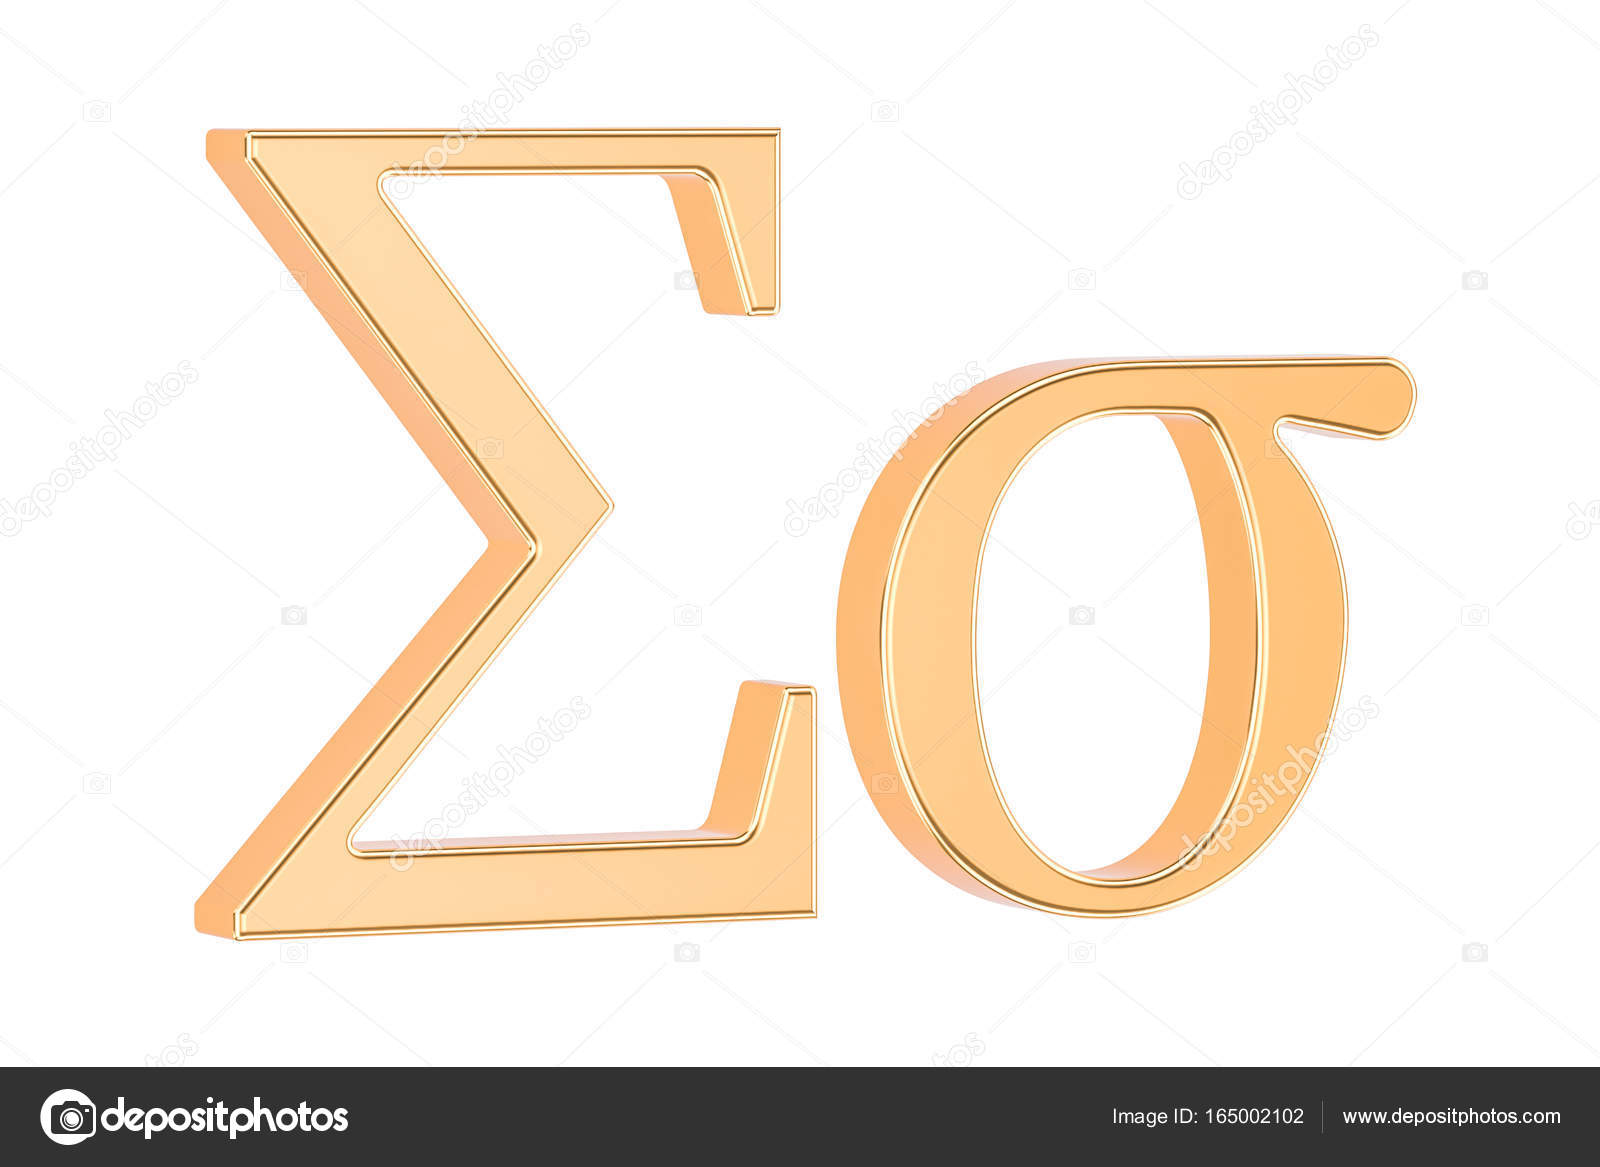 Golden greek letter sigma 3d rendering stock photo alexlmx golden greek letter sigma 3d rendering stock photo biocorpaavc Choice Image